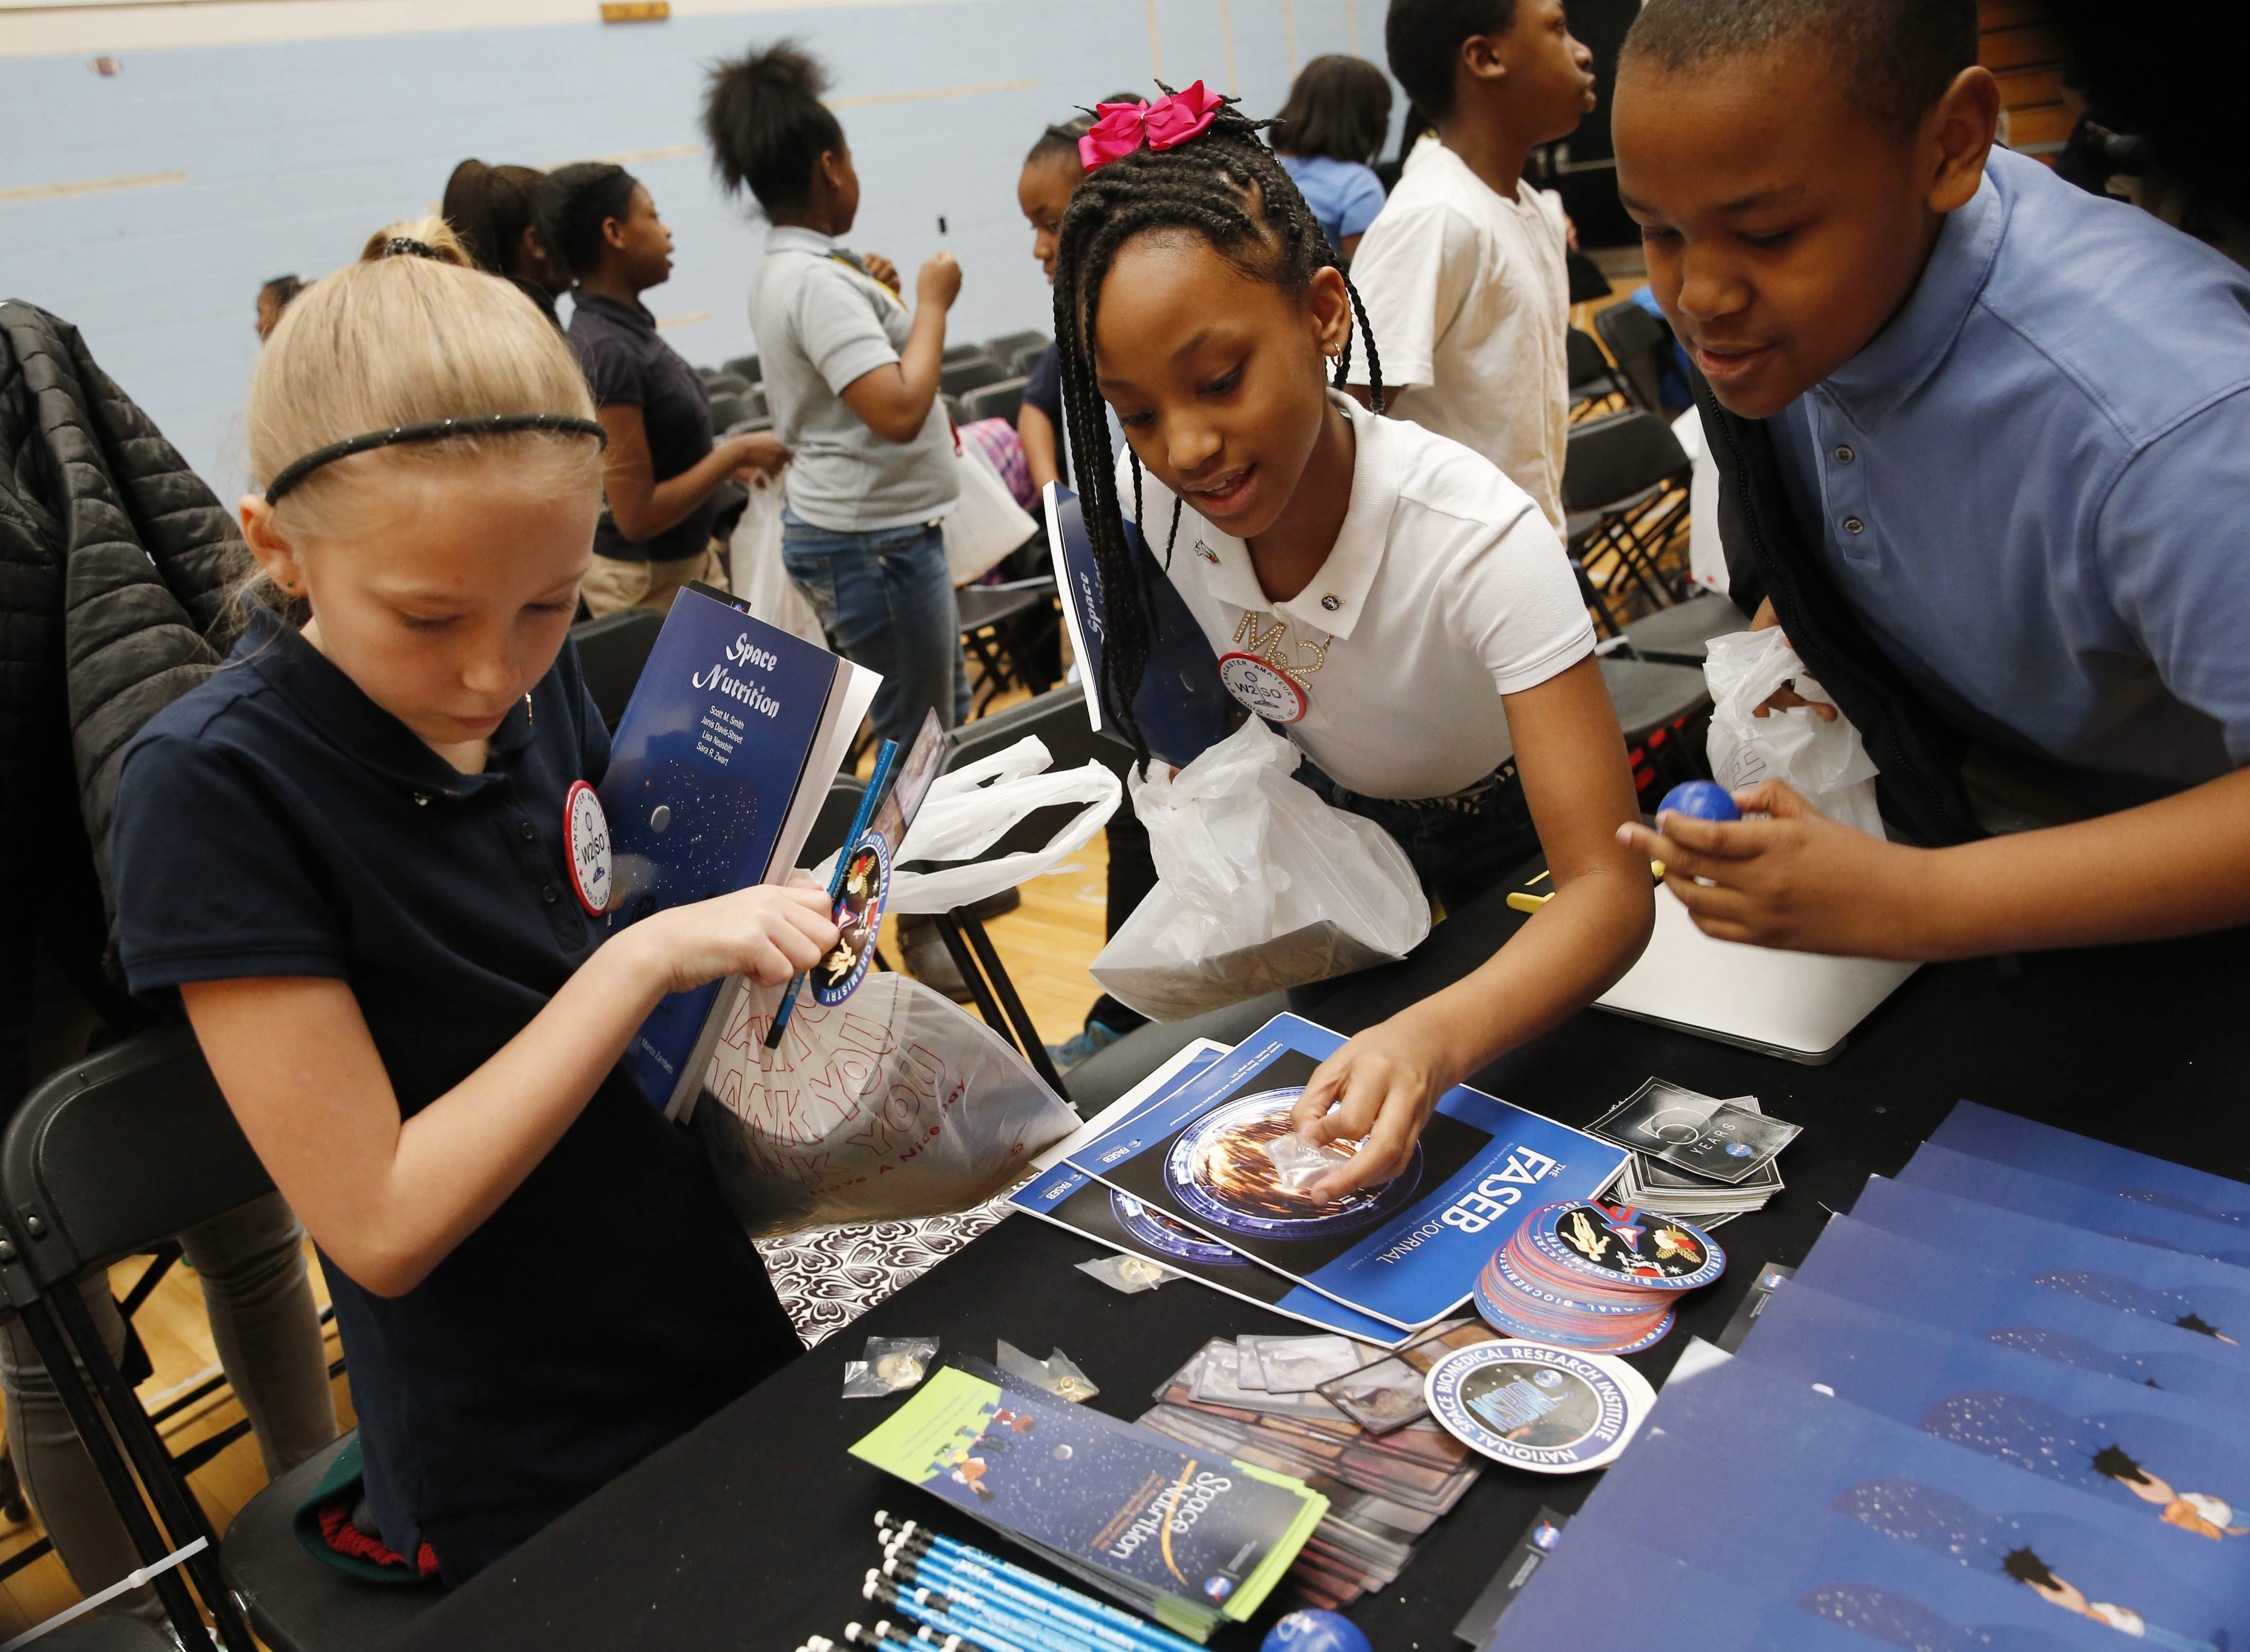 Harvey Austin students, from left, Denise Yerry, Eloni Herndon and Elijah Mostiller pick up some information about life in space after their class had a space chat with astronaut Tim Copra aboard the International Space Station on Tuesday.